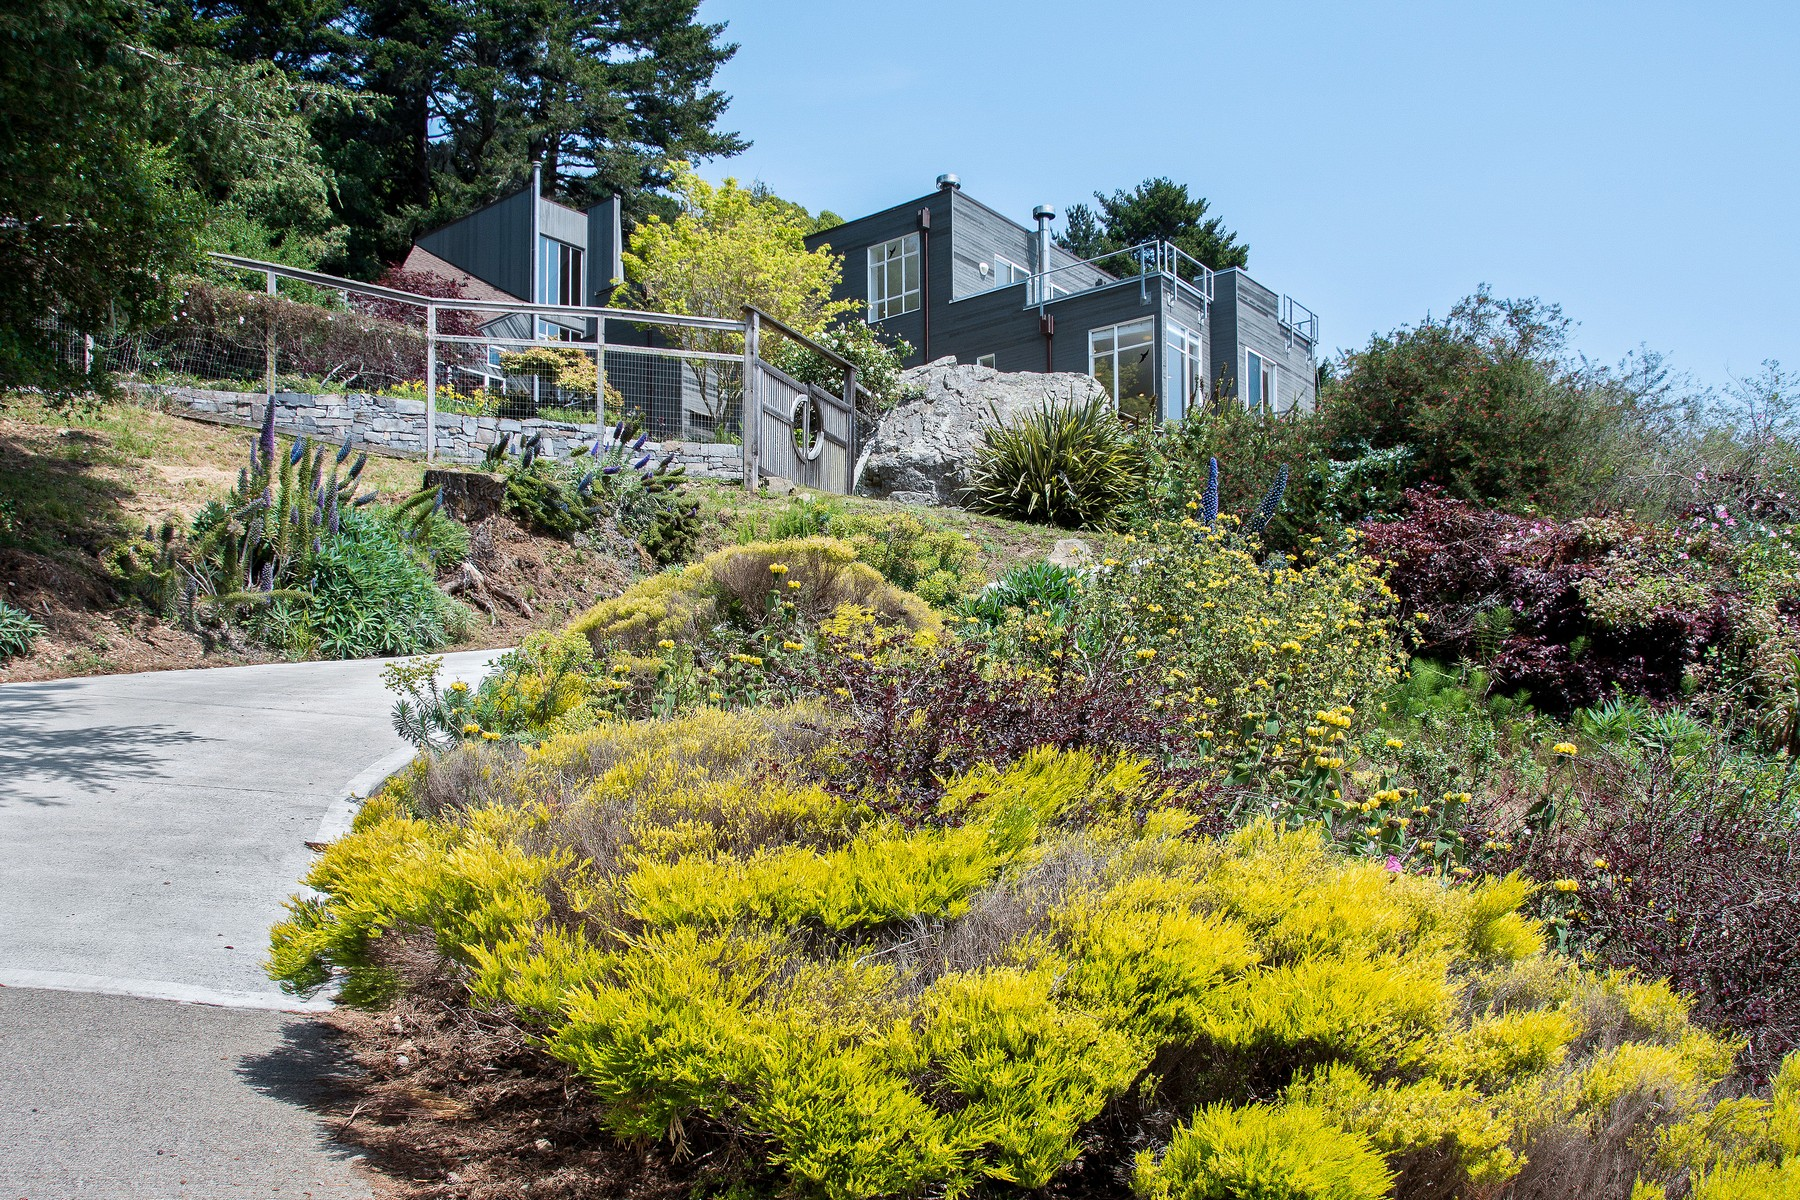 Single Family Home for Sale at Private Stinson Beach Paradise 7230 Panoramic Highway Stinson Beach, California 94970 United States